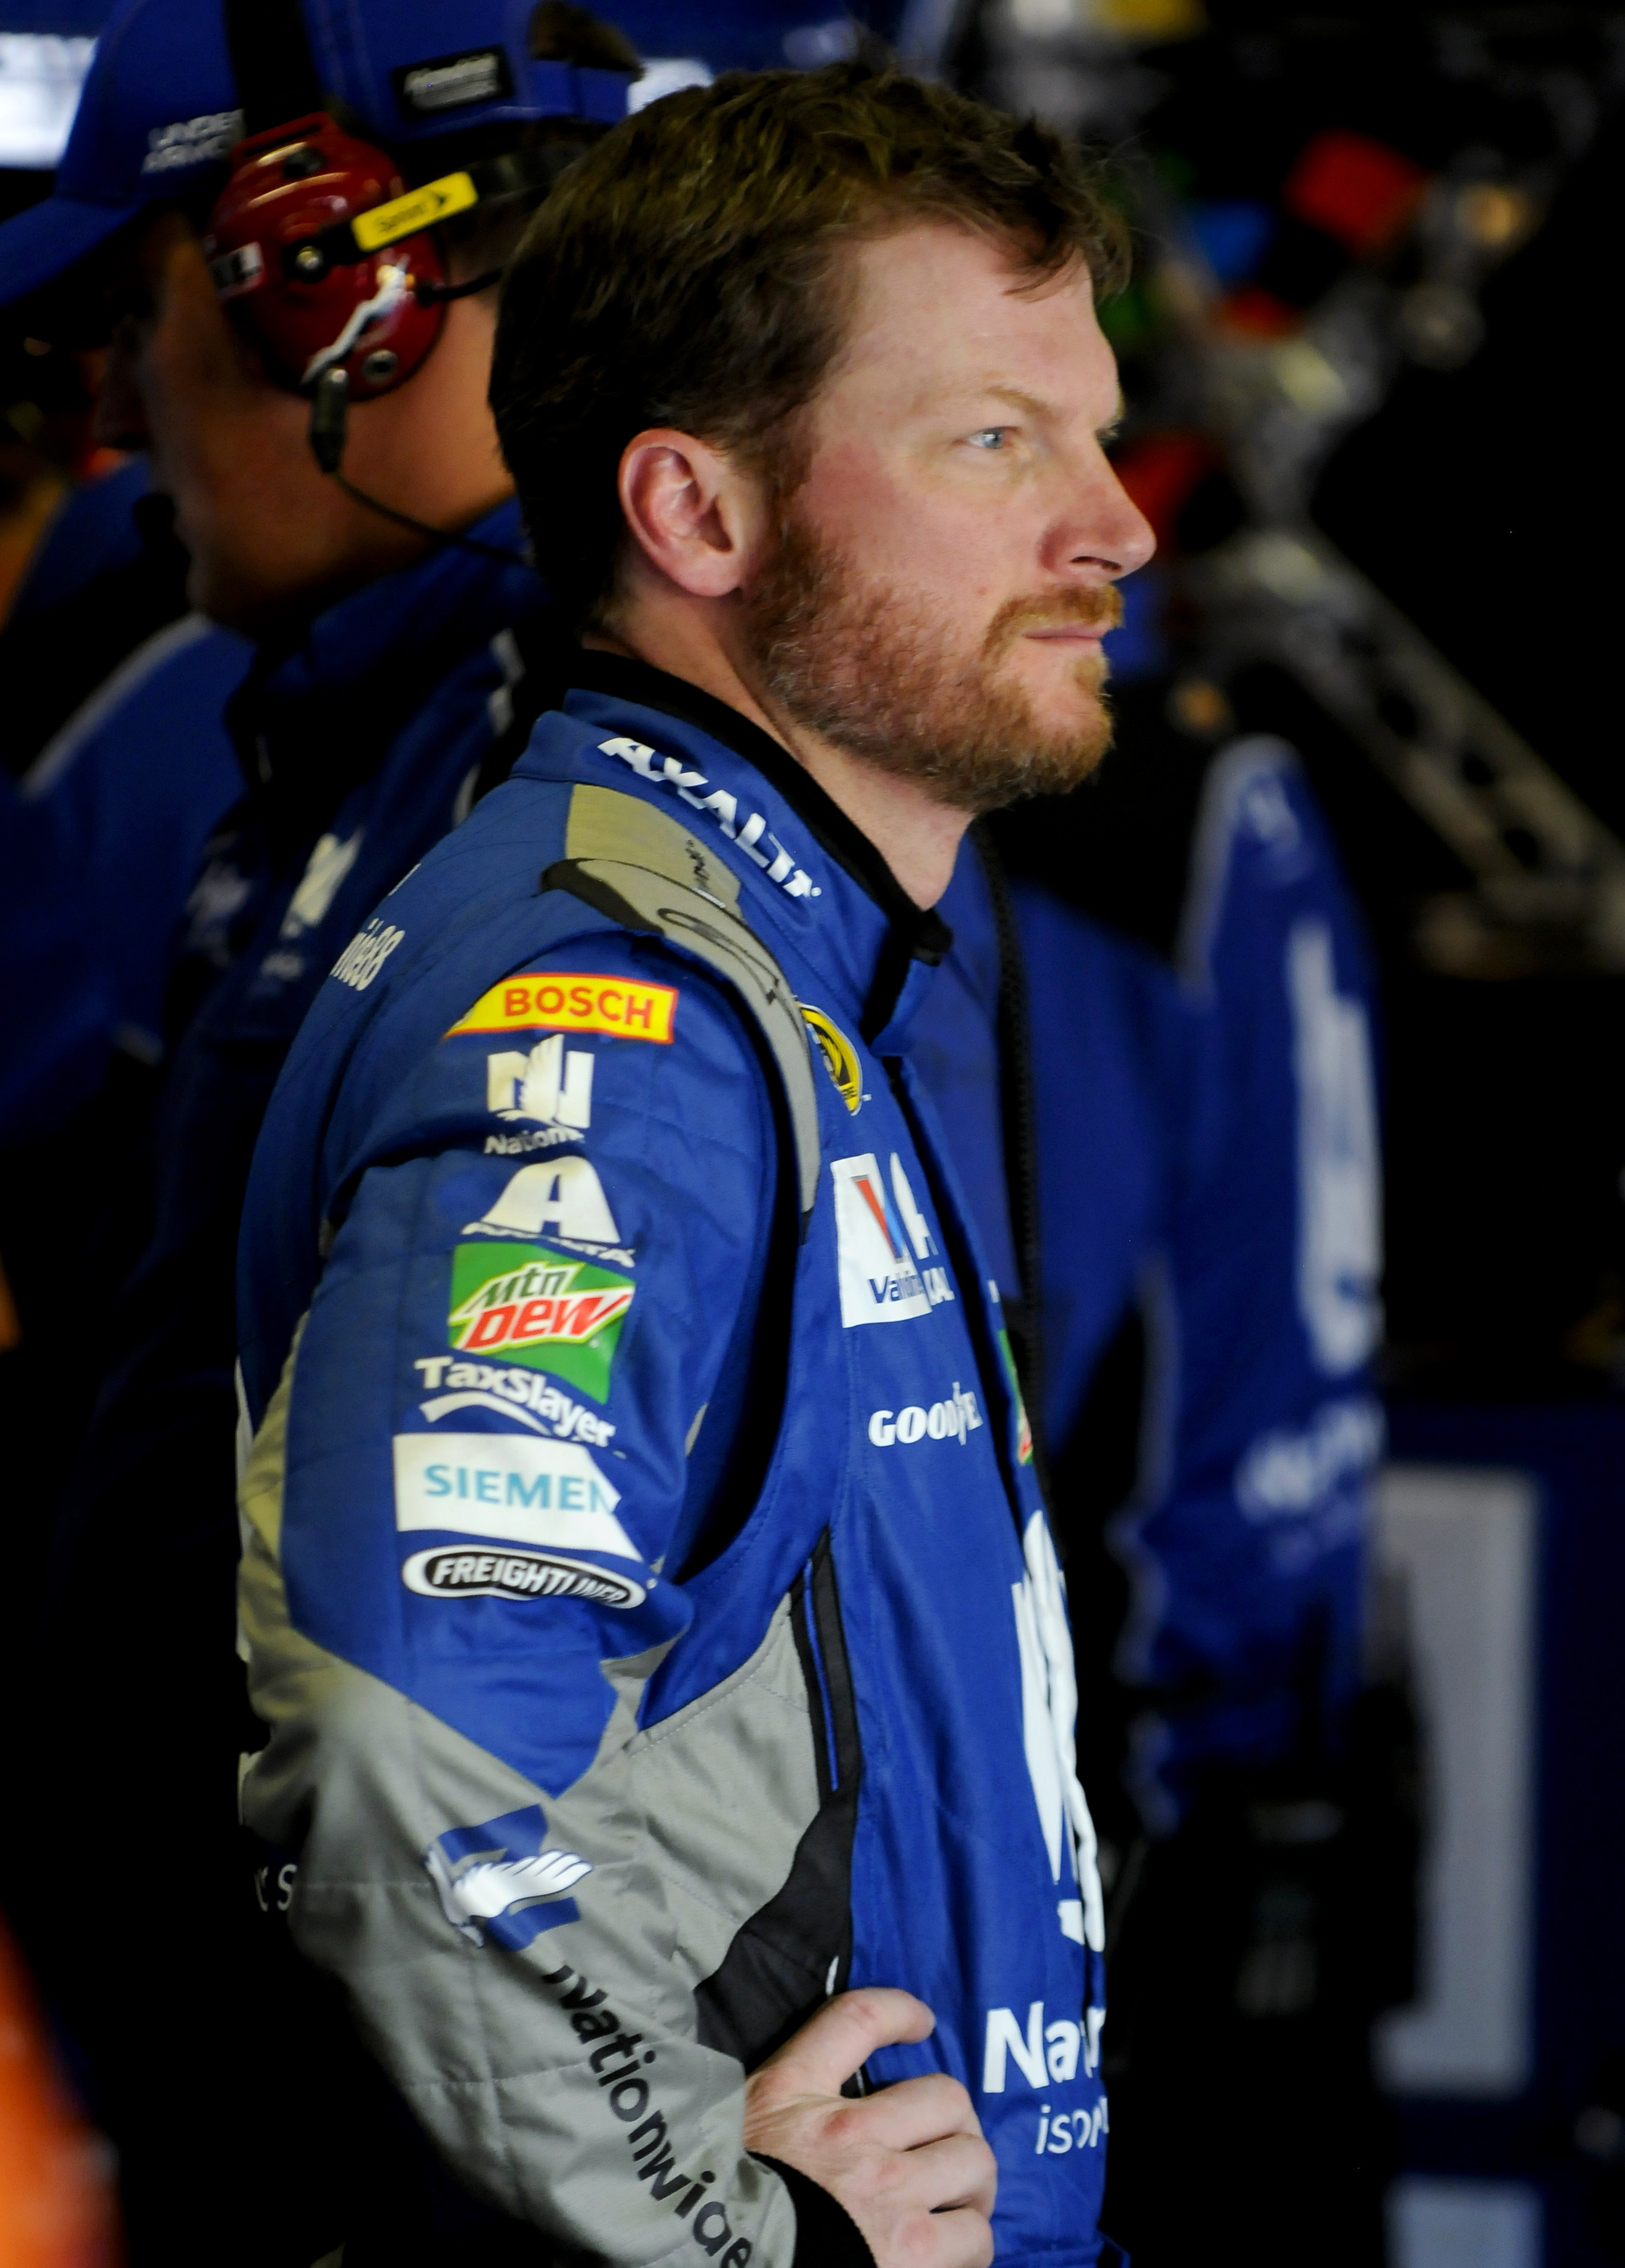 Dale Earnhardt Jr. stands in a garage during practice for the NASCAR Sprint Cup Series auto race at Texas Motor Speedway in Fort Worth, Texas, Thursday, April 7, 2016. (AP Photo/Ralph Lauer)